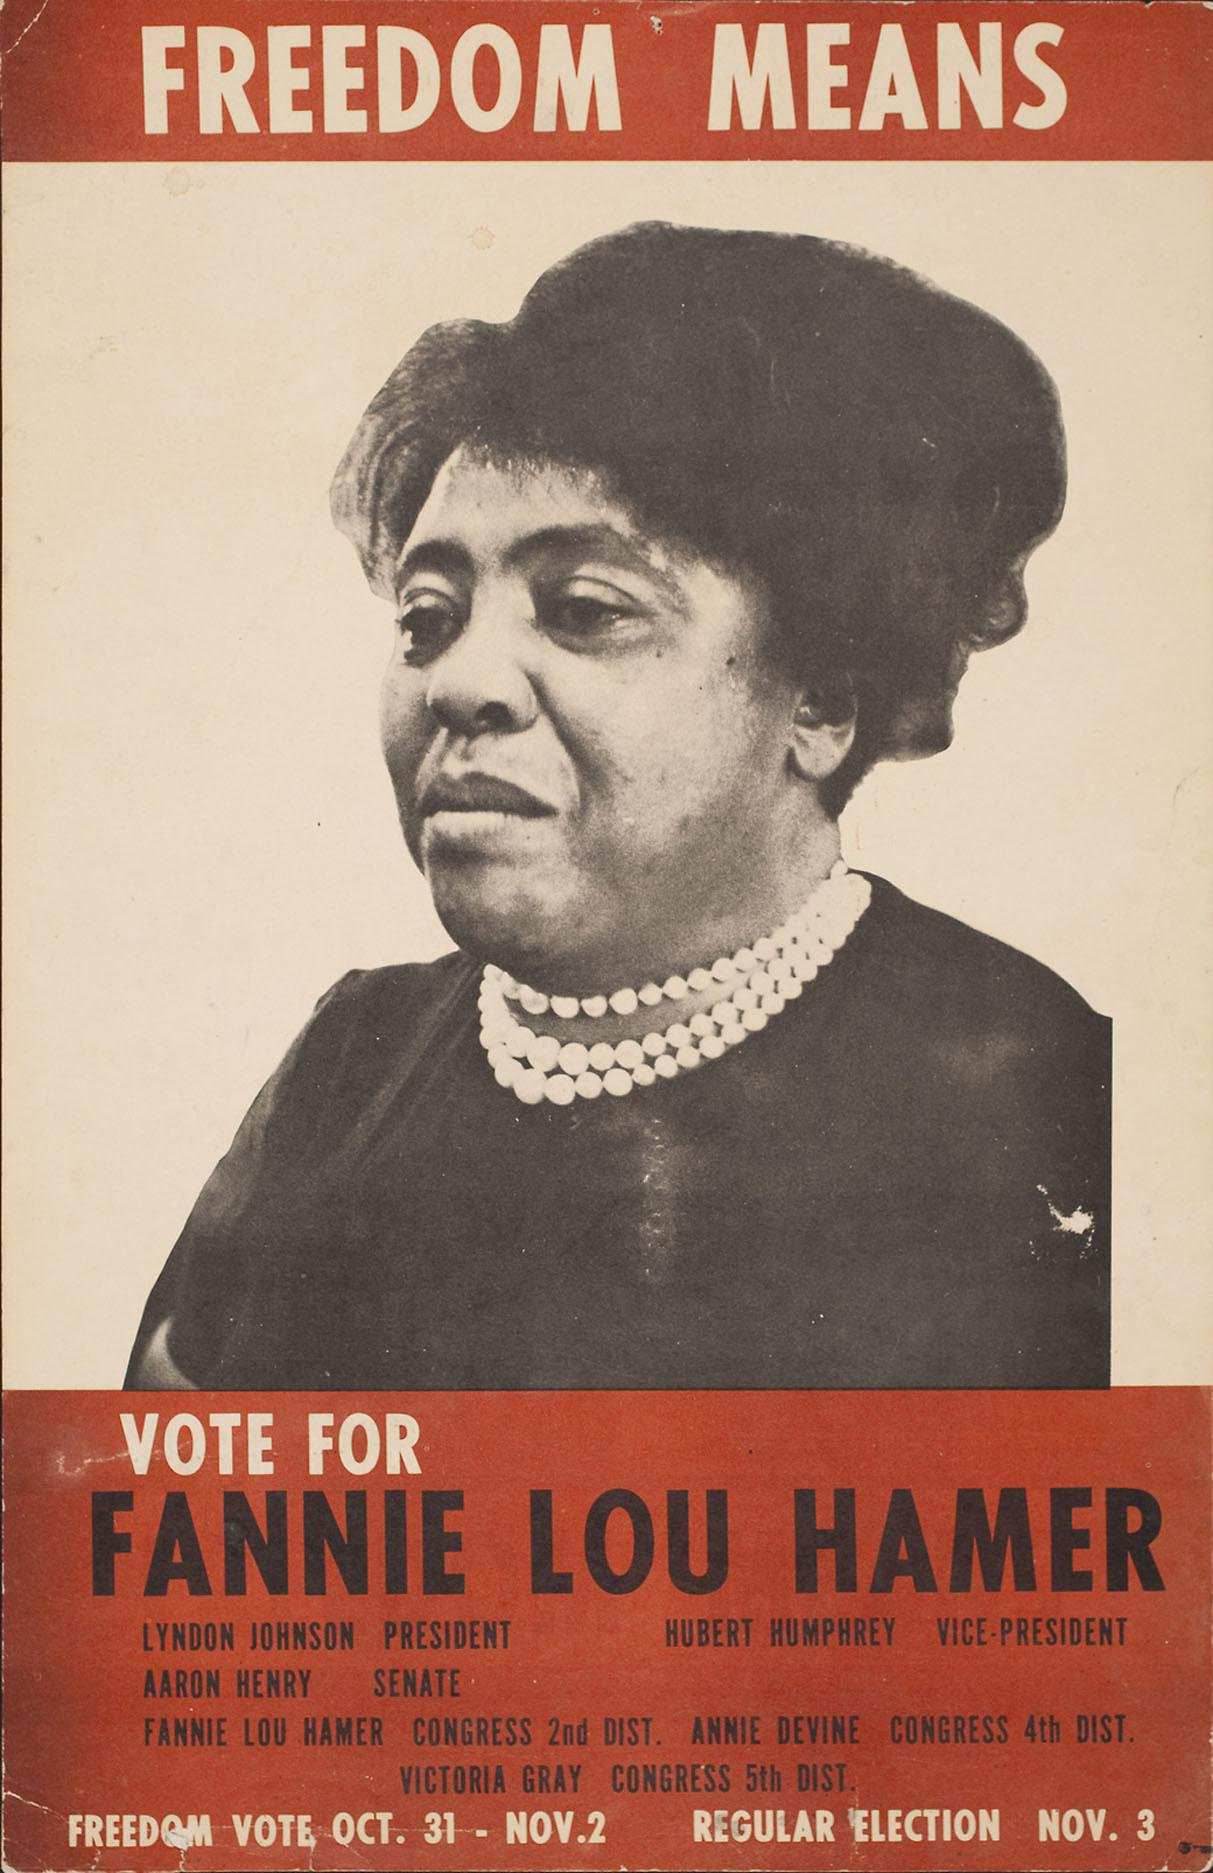 fannie lou hammer essay Fannie lou hamer's life took a dramatic turn the day she showed up for a mass meeting to learn about voting it was august 1962 and hamer, who was forty-four years old, wasn't even sure what a mass meeting was.